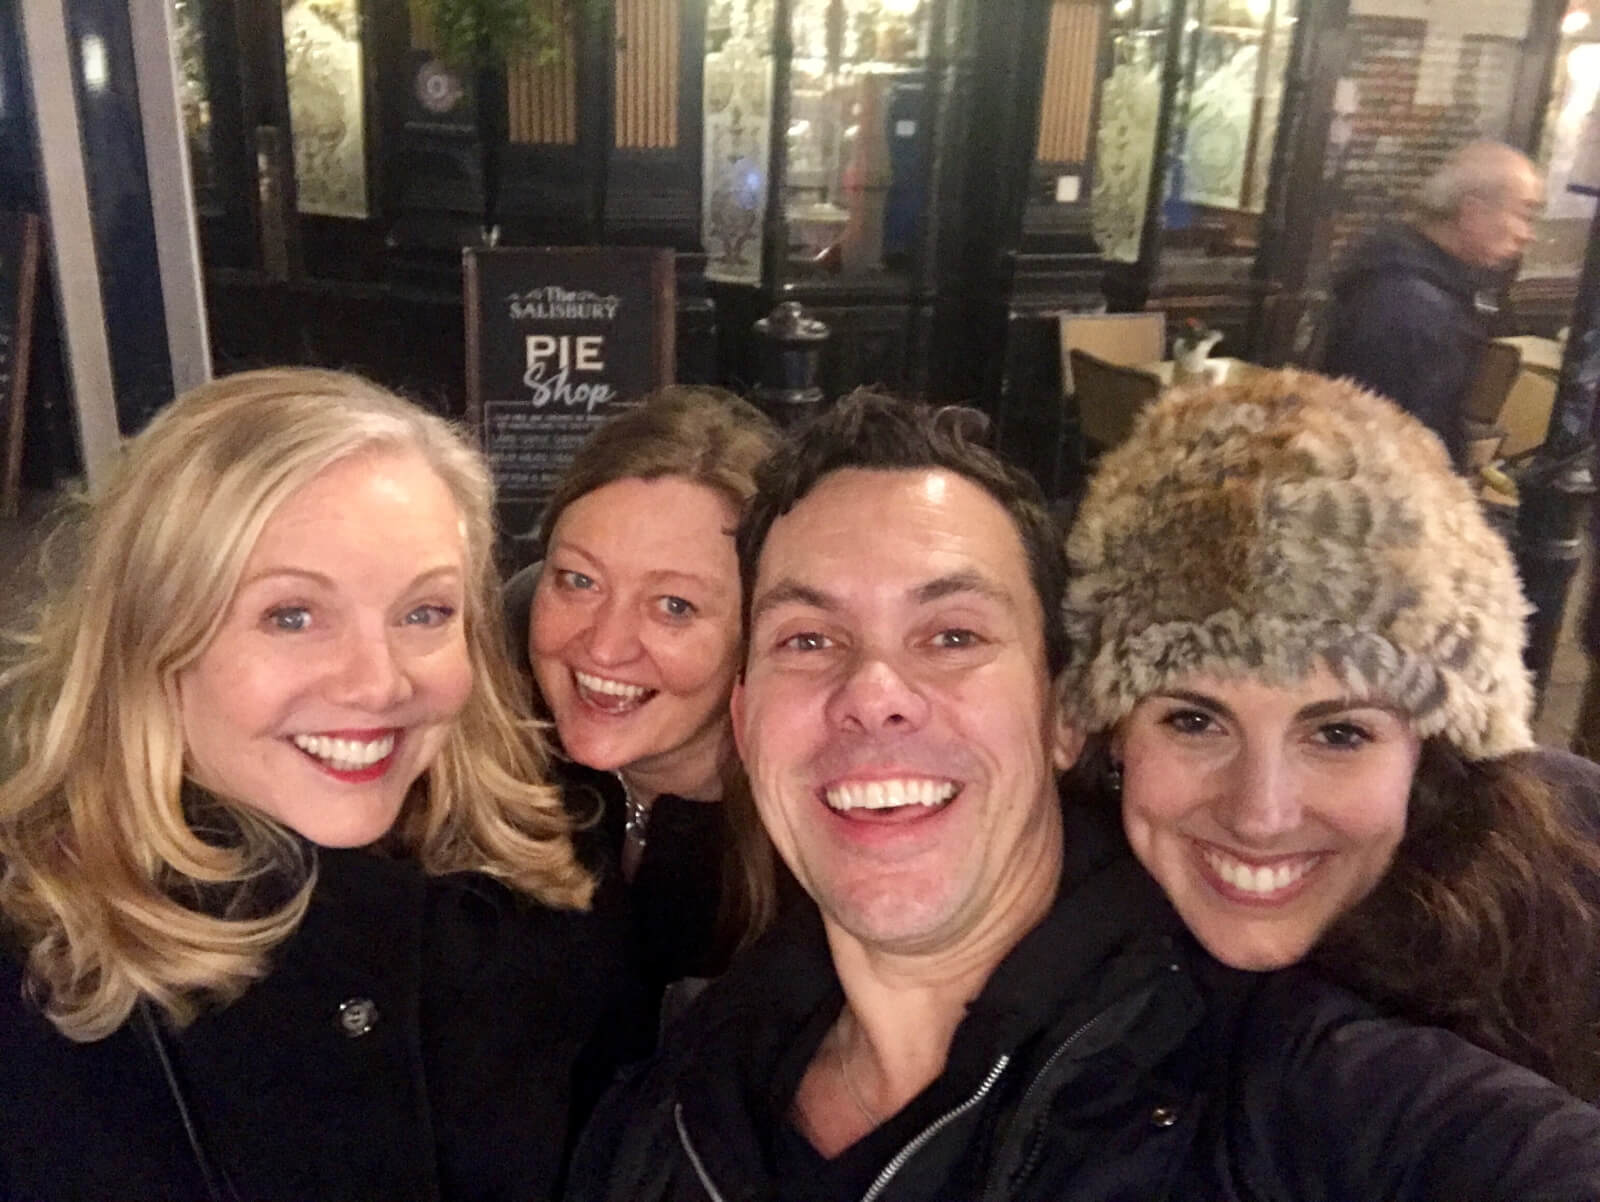 Director Susan Stroman, Casting Director Jill Green, Associate Choreographer James Gray, and dance star Tiler Peck. All are huddled outside and in front of The Salisbury Pie Shop.